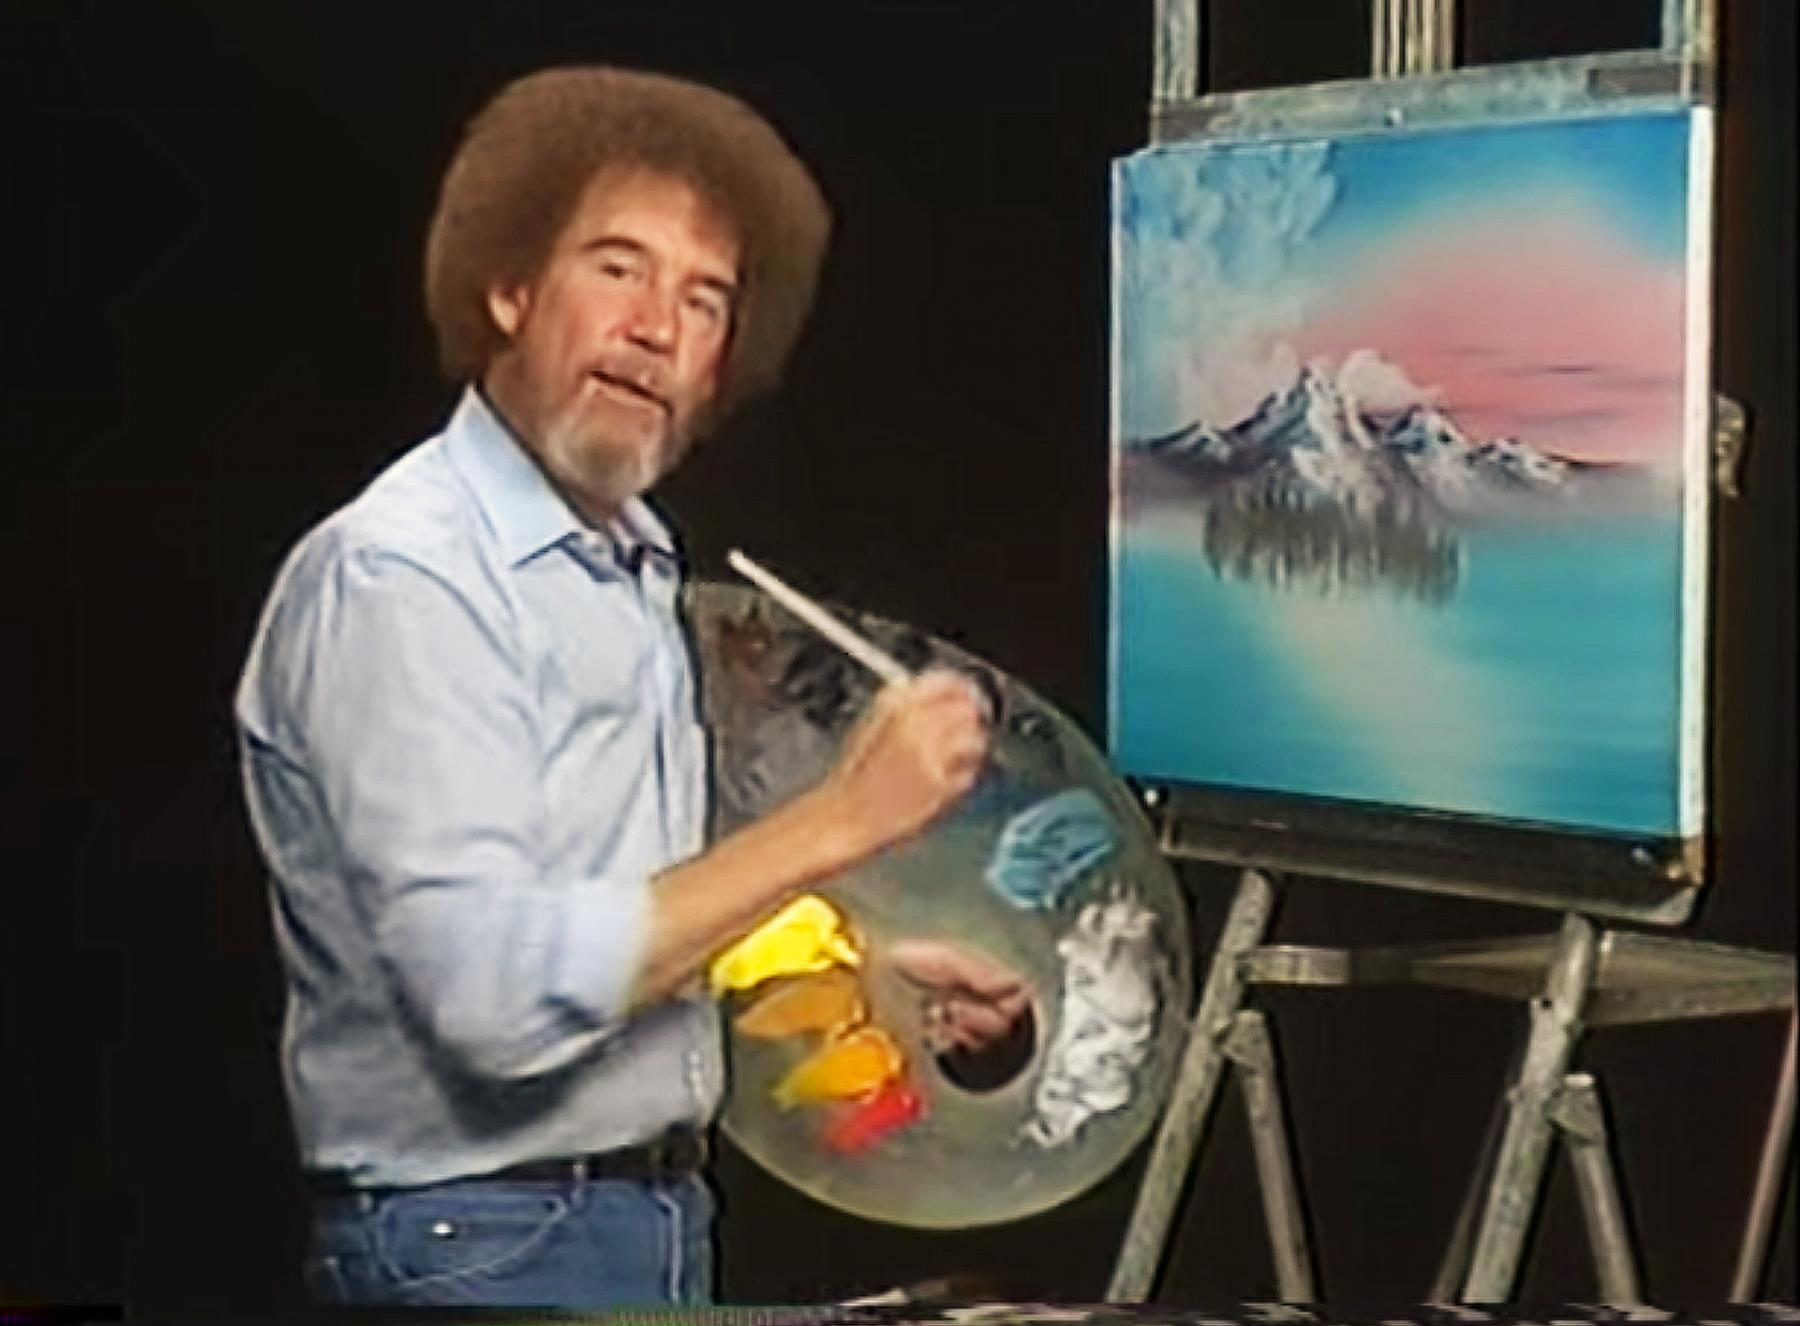 Straight perm yahoo answers - Beloved Artist Bob Ross Curly Hair Was Actually Straight Here S Why He Got A Perm